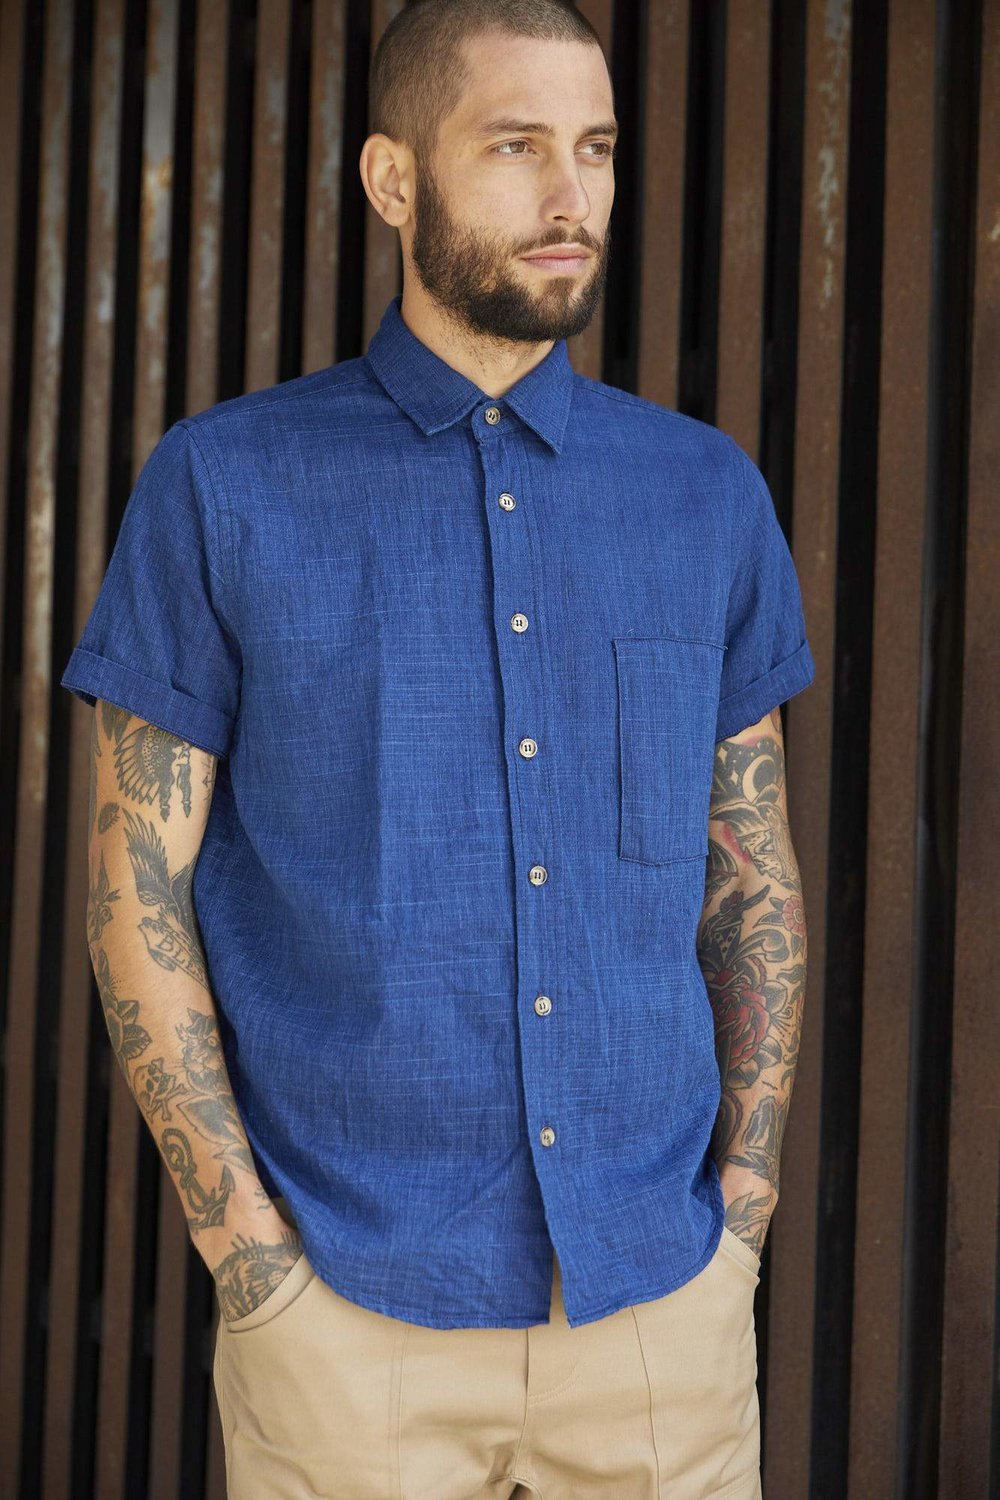 Kaiyo Button Up - $120